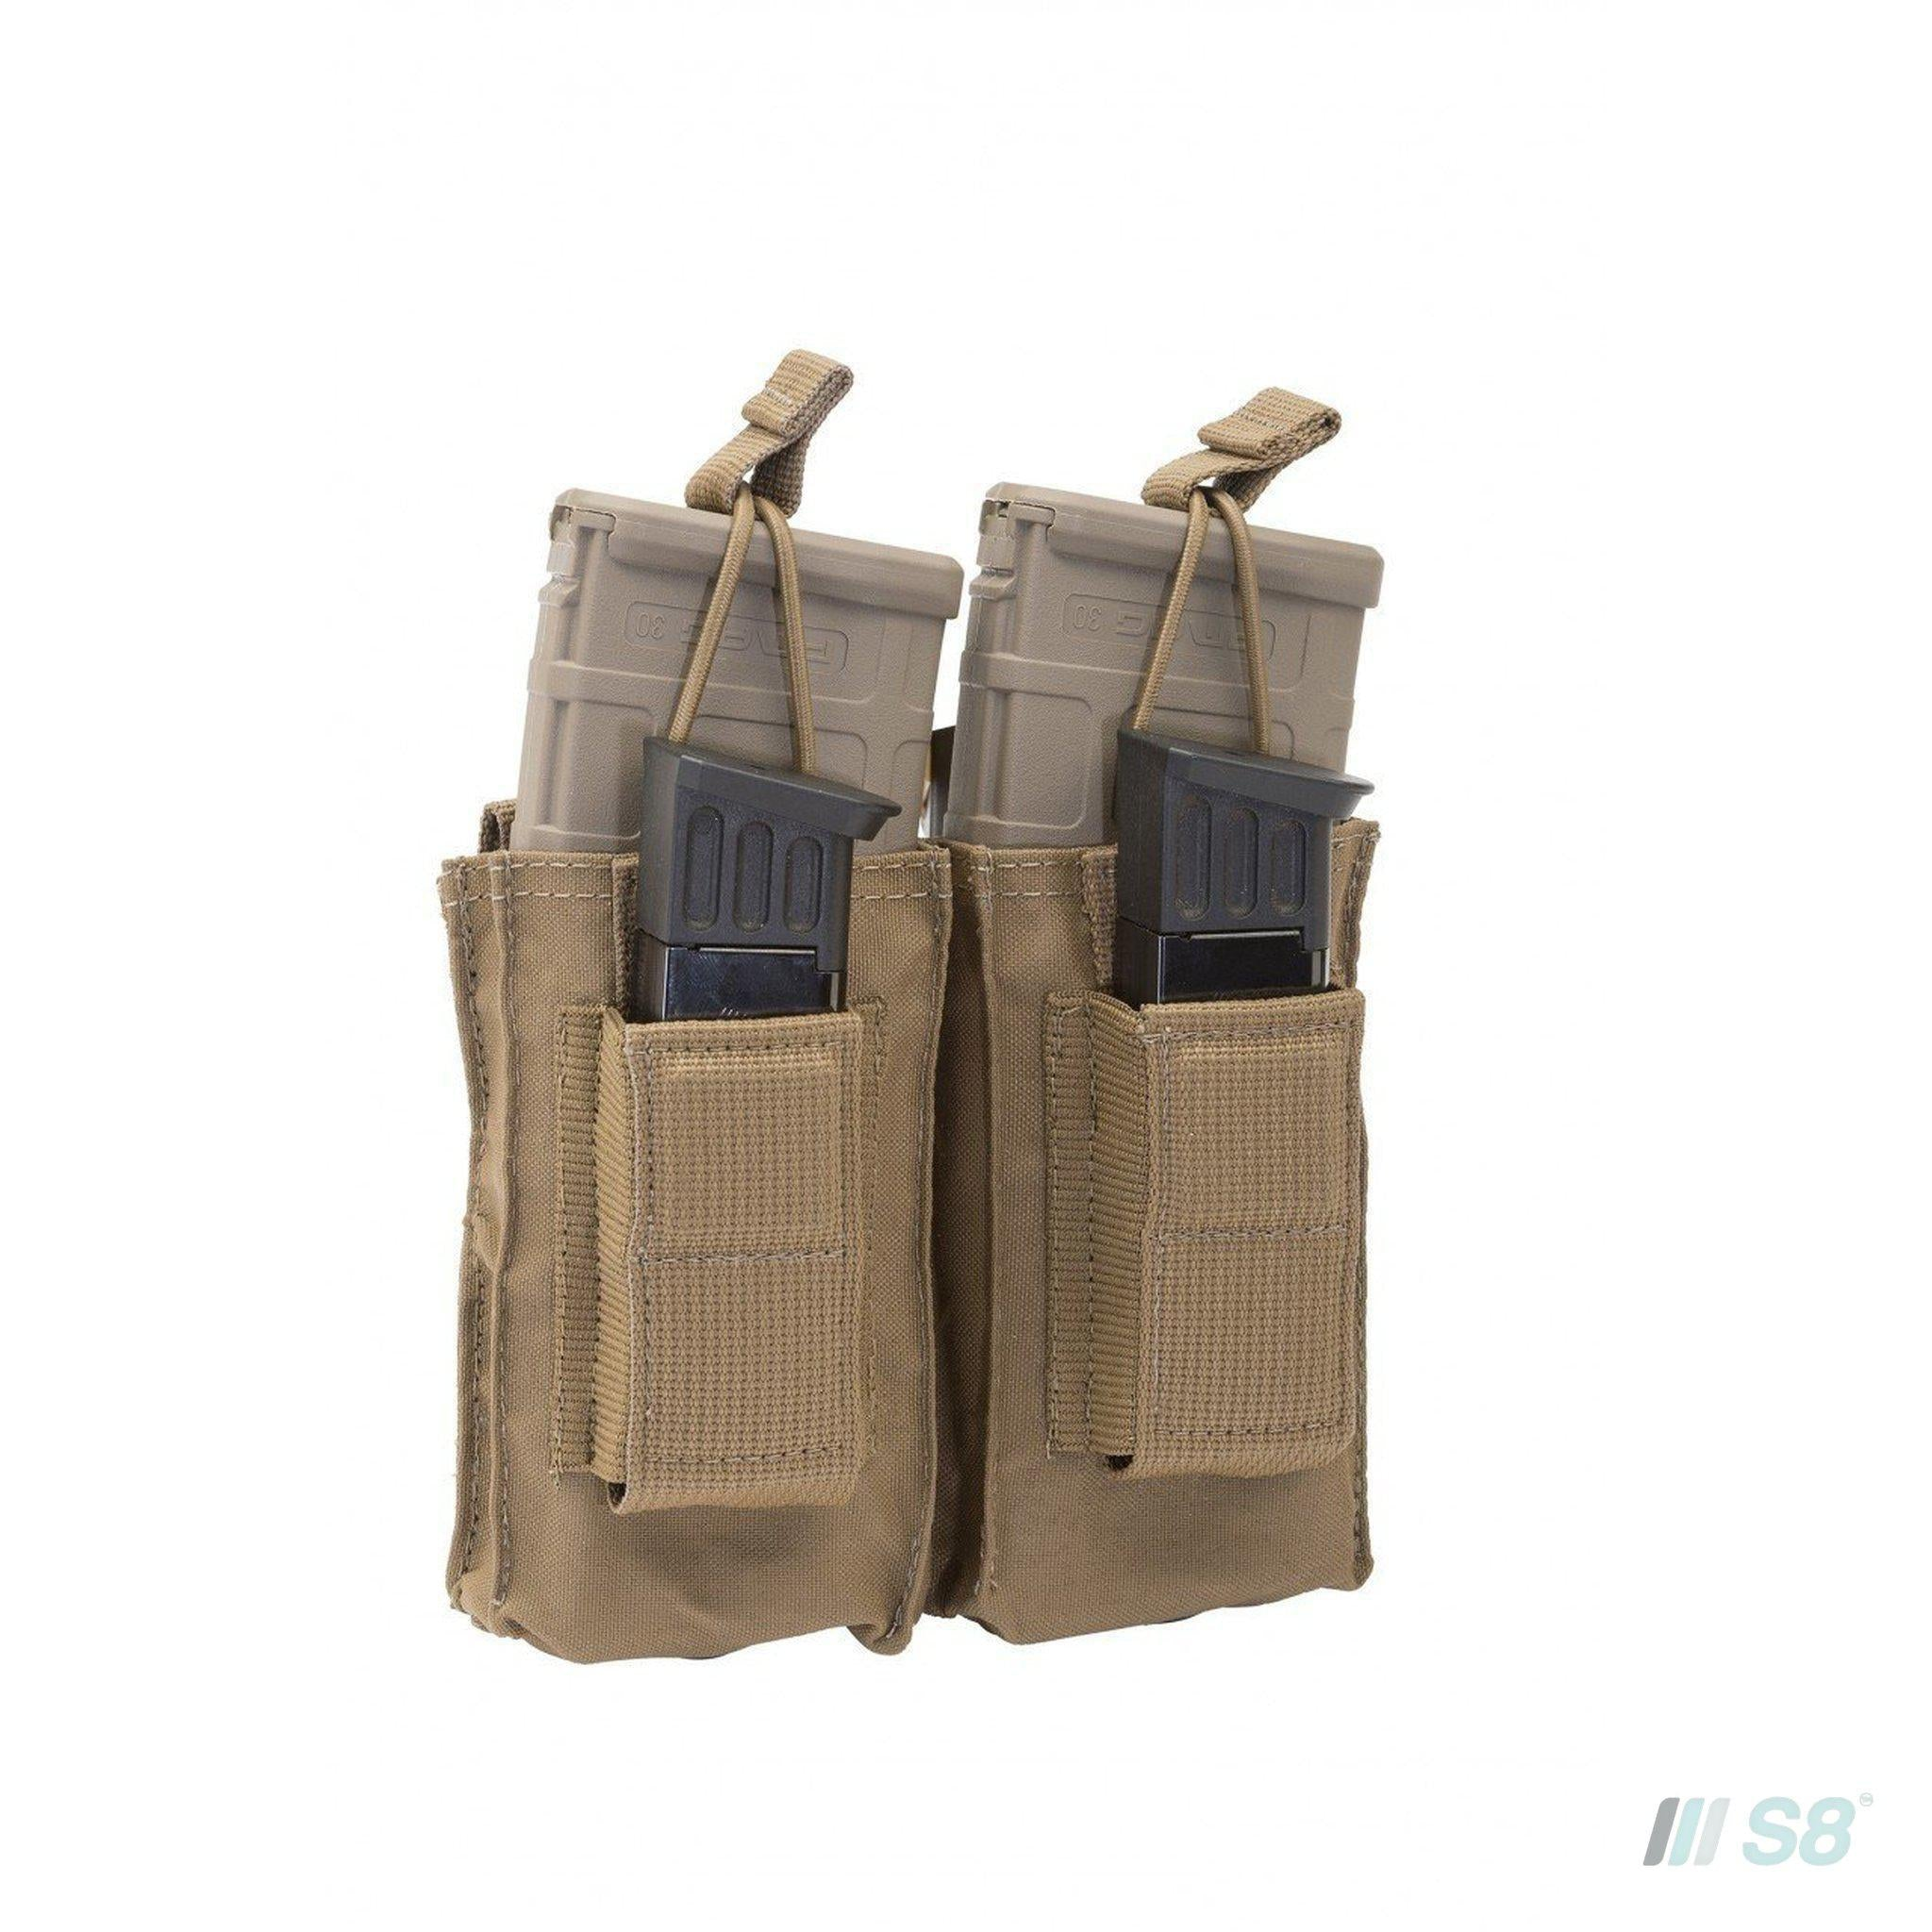 T3 Magnet M4 Single Row Mag Pouch (2)-T3-S8 Products Group